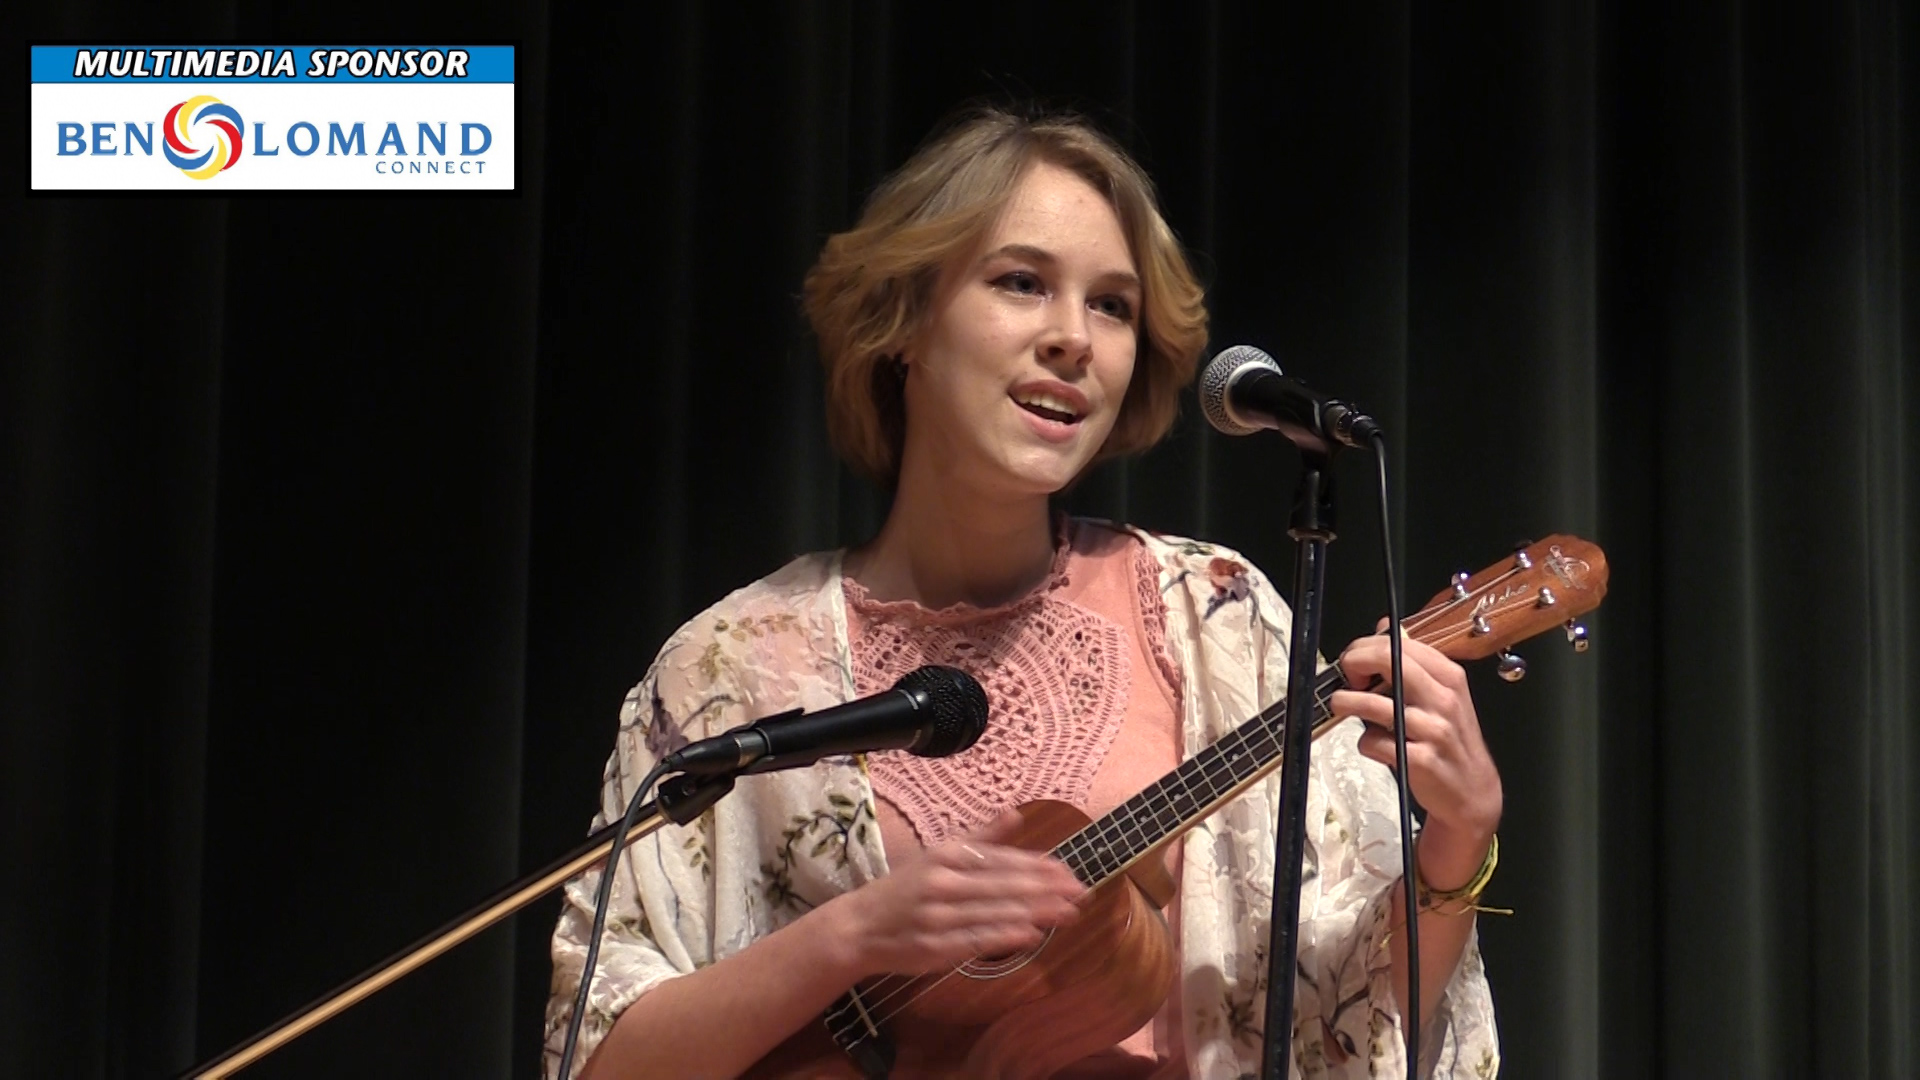 VIDEO - Talent show at WCHS